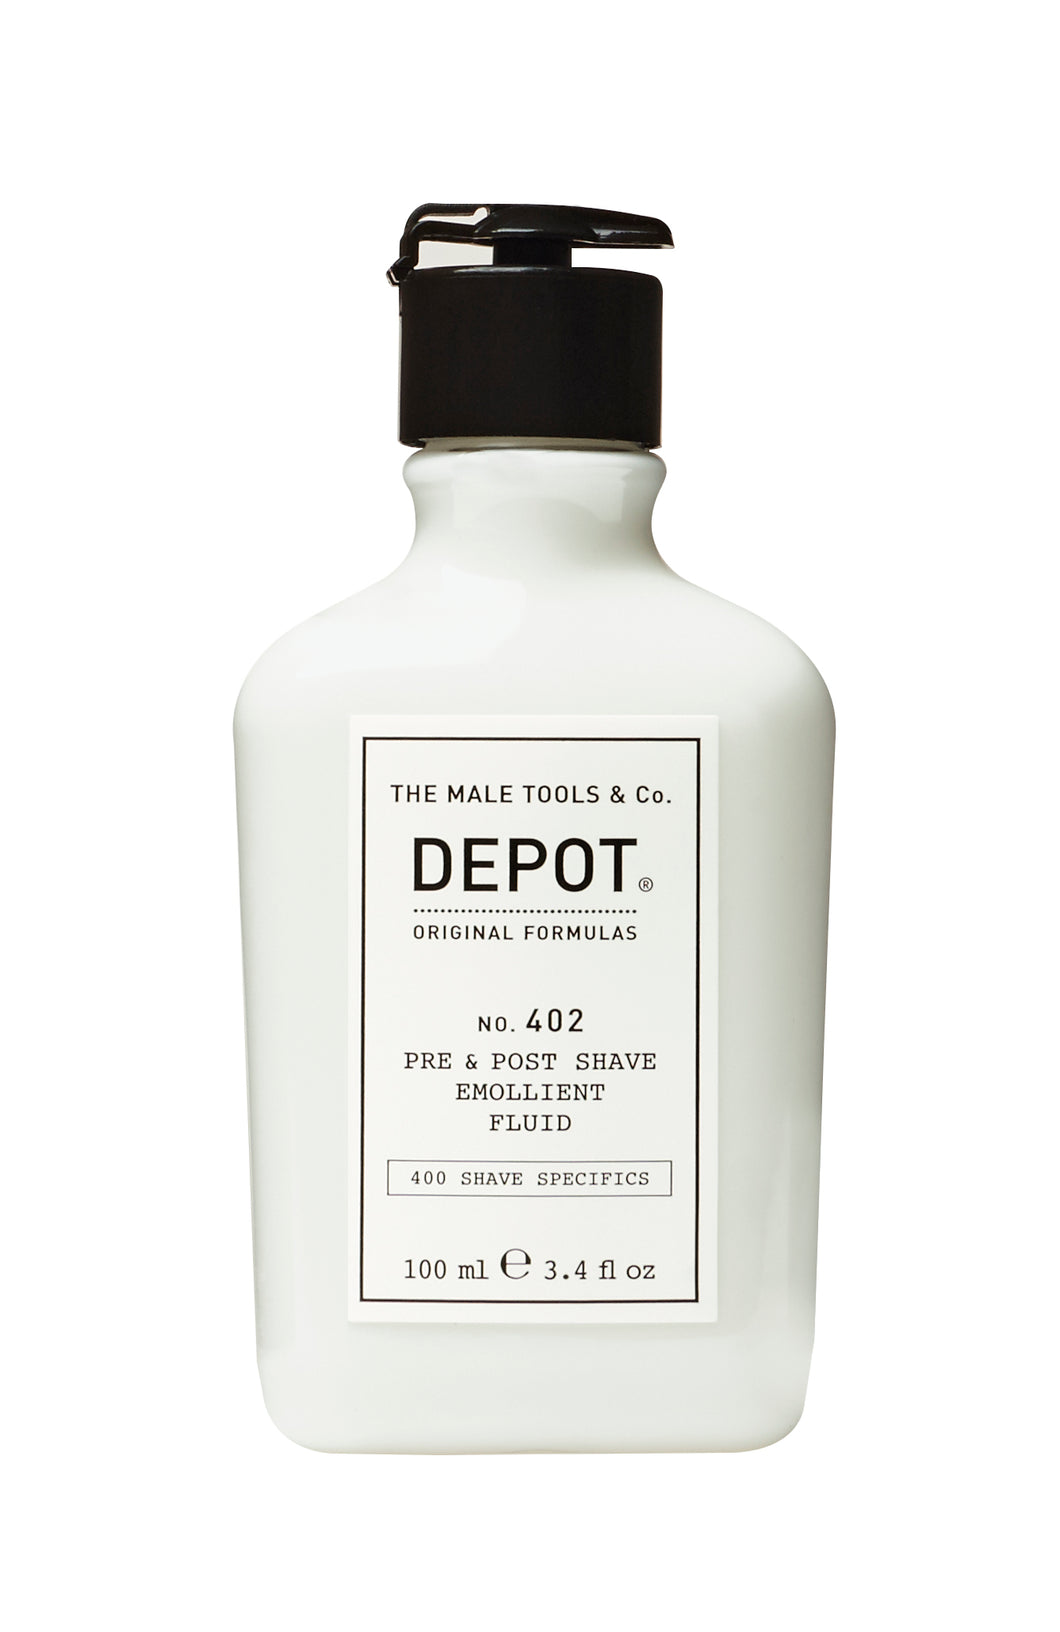 DEPOT MALE TOOL NO. 402 PRE & POST SHAVE EMOLLIENT FLUID